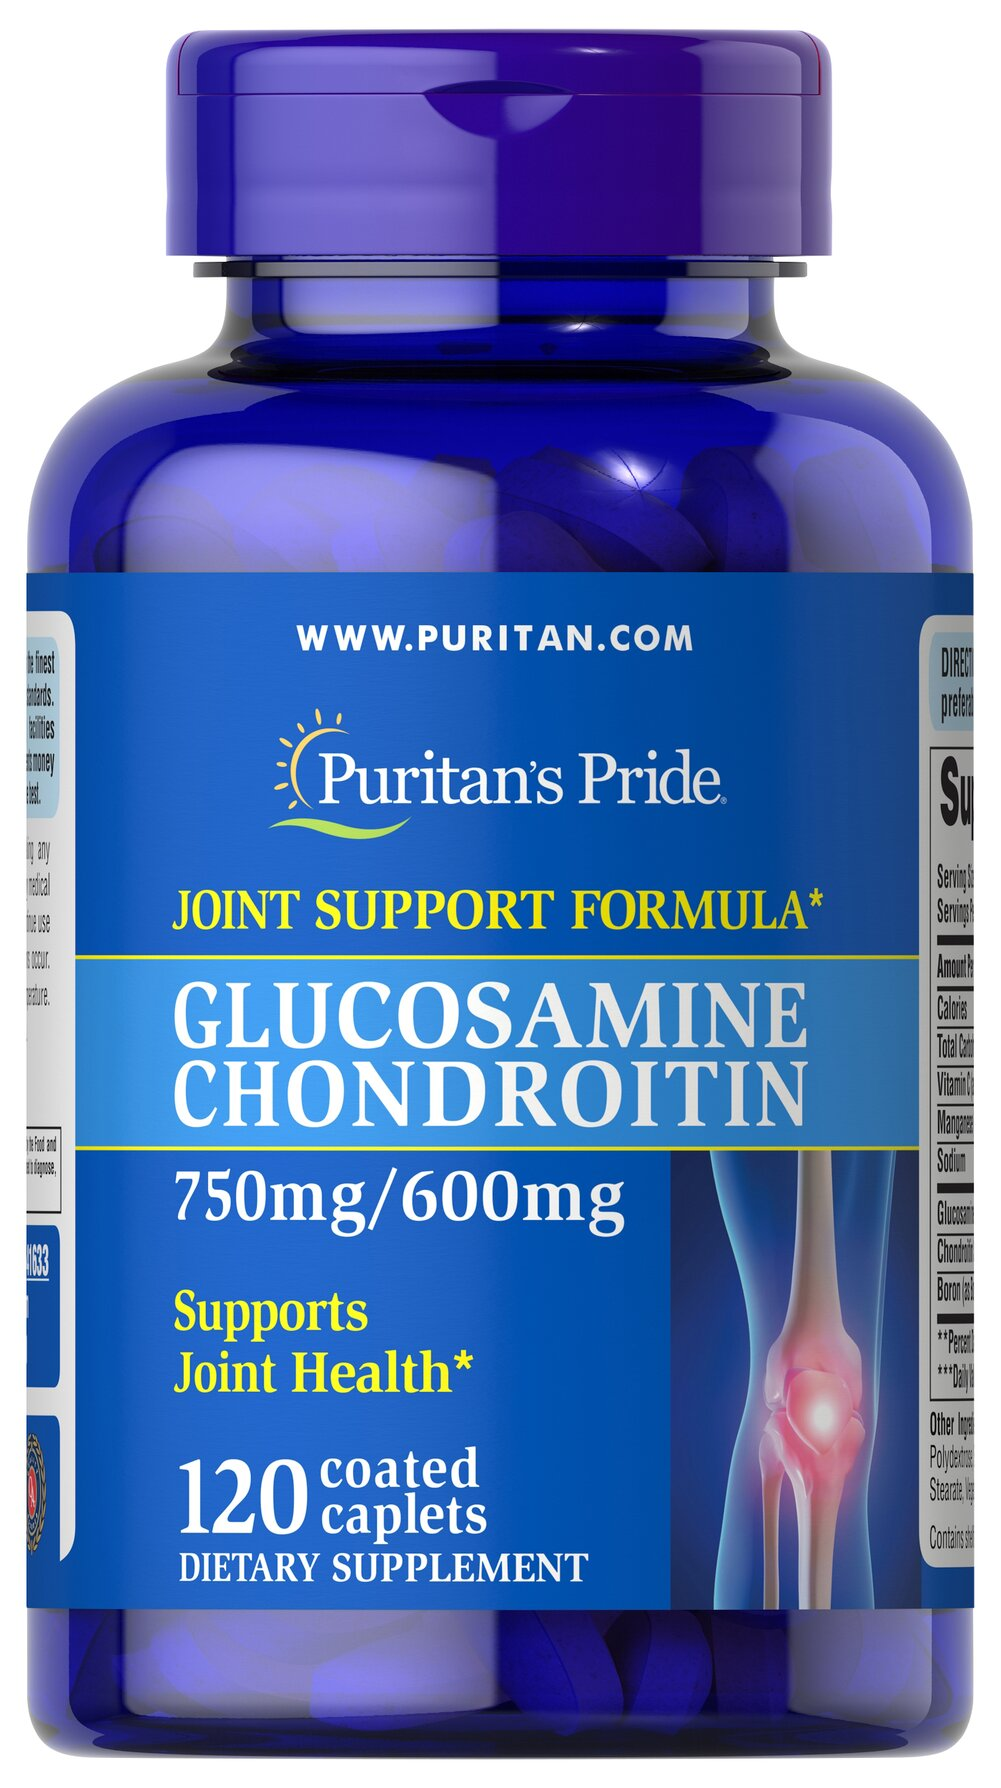 Triple Strength Glucosamine Chondroitin 750 mg/600 mg <p>Glucosamine is a key structural component in cartilage and acts as a lubricant**</p><p>Chondroitin acts as a lubricant and is an important molecular component of glycosaminoglycans**</p><p>One serving of Triple Strength Glucosamine Chondroitin helps promote comfortable joint movement and two caplets provide 1500 mg Glucosamine and 1200 mg Chondroitin.</p> 120 Caplets 750 mg/600 mg $46.99